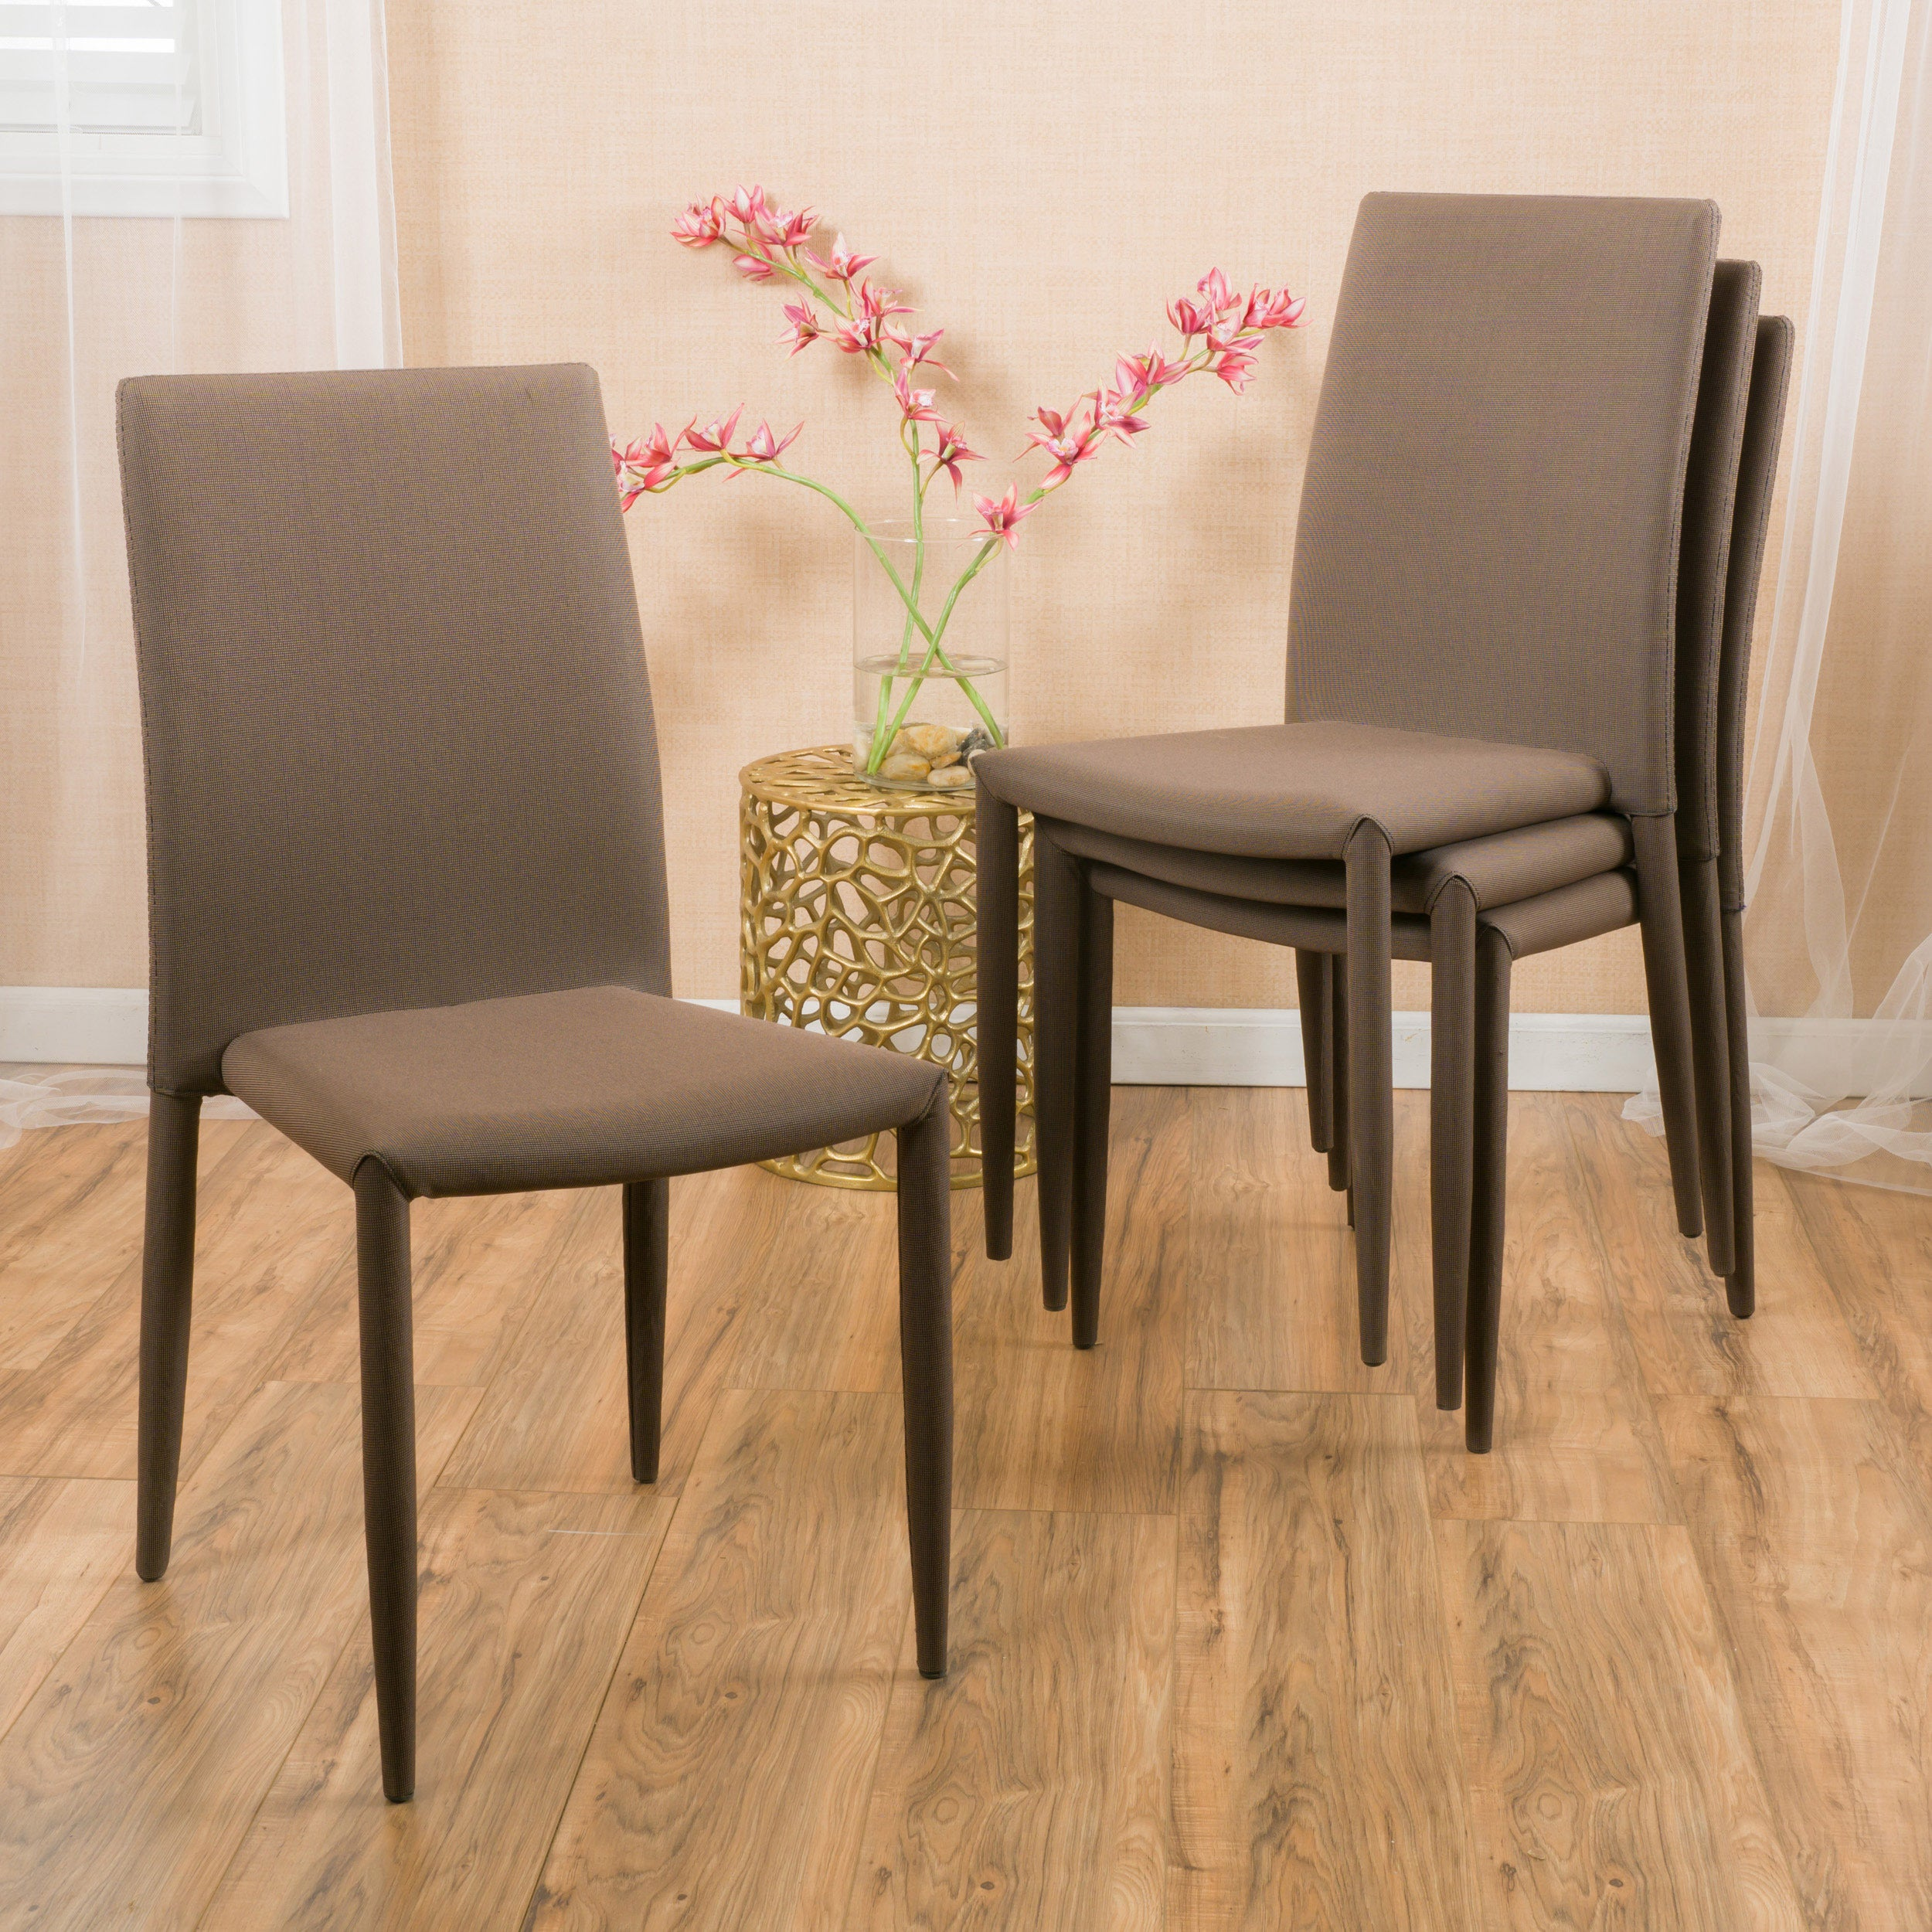 Christopher Knight Home Comstock Fabric Stackable Dining Chair Set Of 4